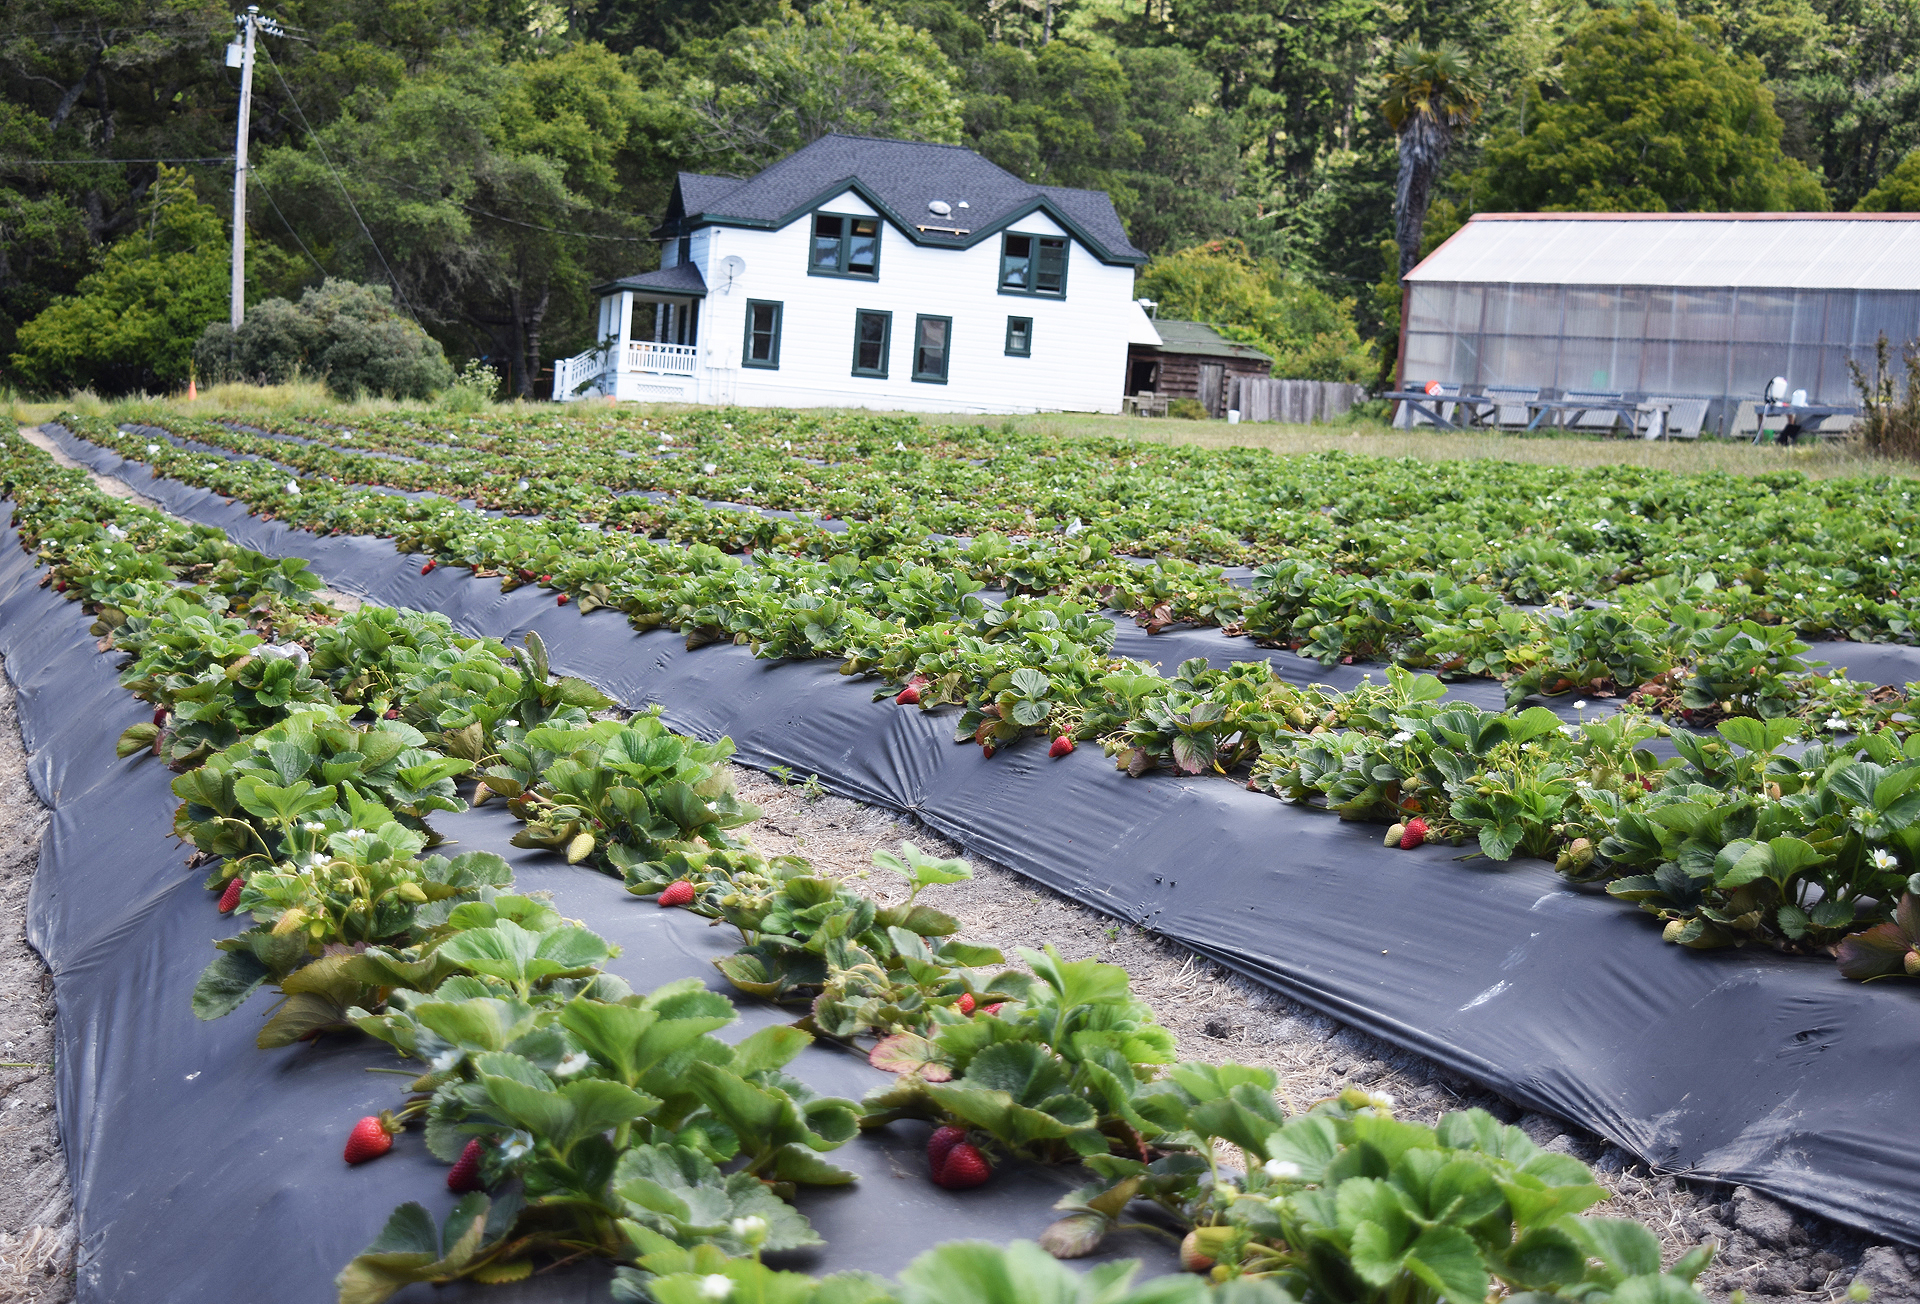 Seascape and Albion strawberries as well as other produce is grown at Green Oaks Creek Farm near the ocean in Pescadero.